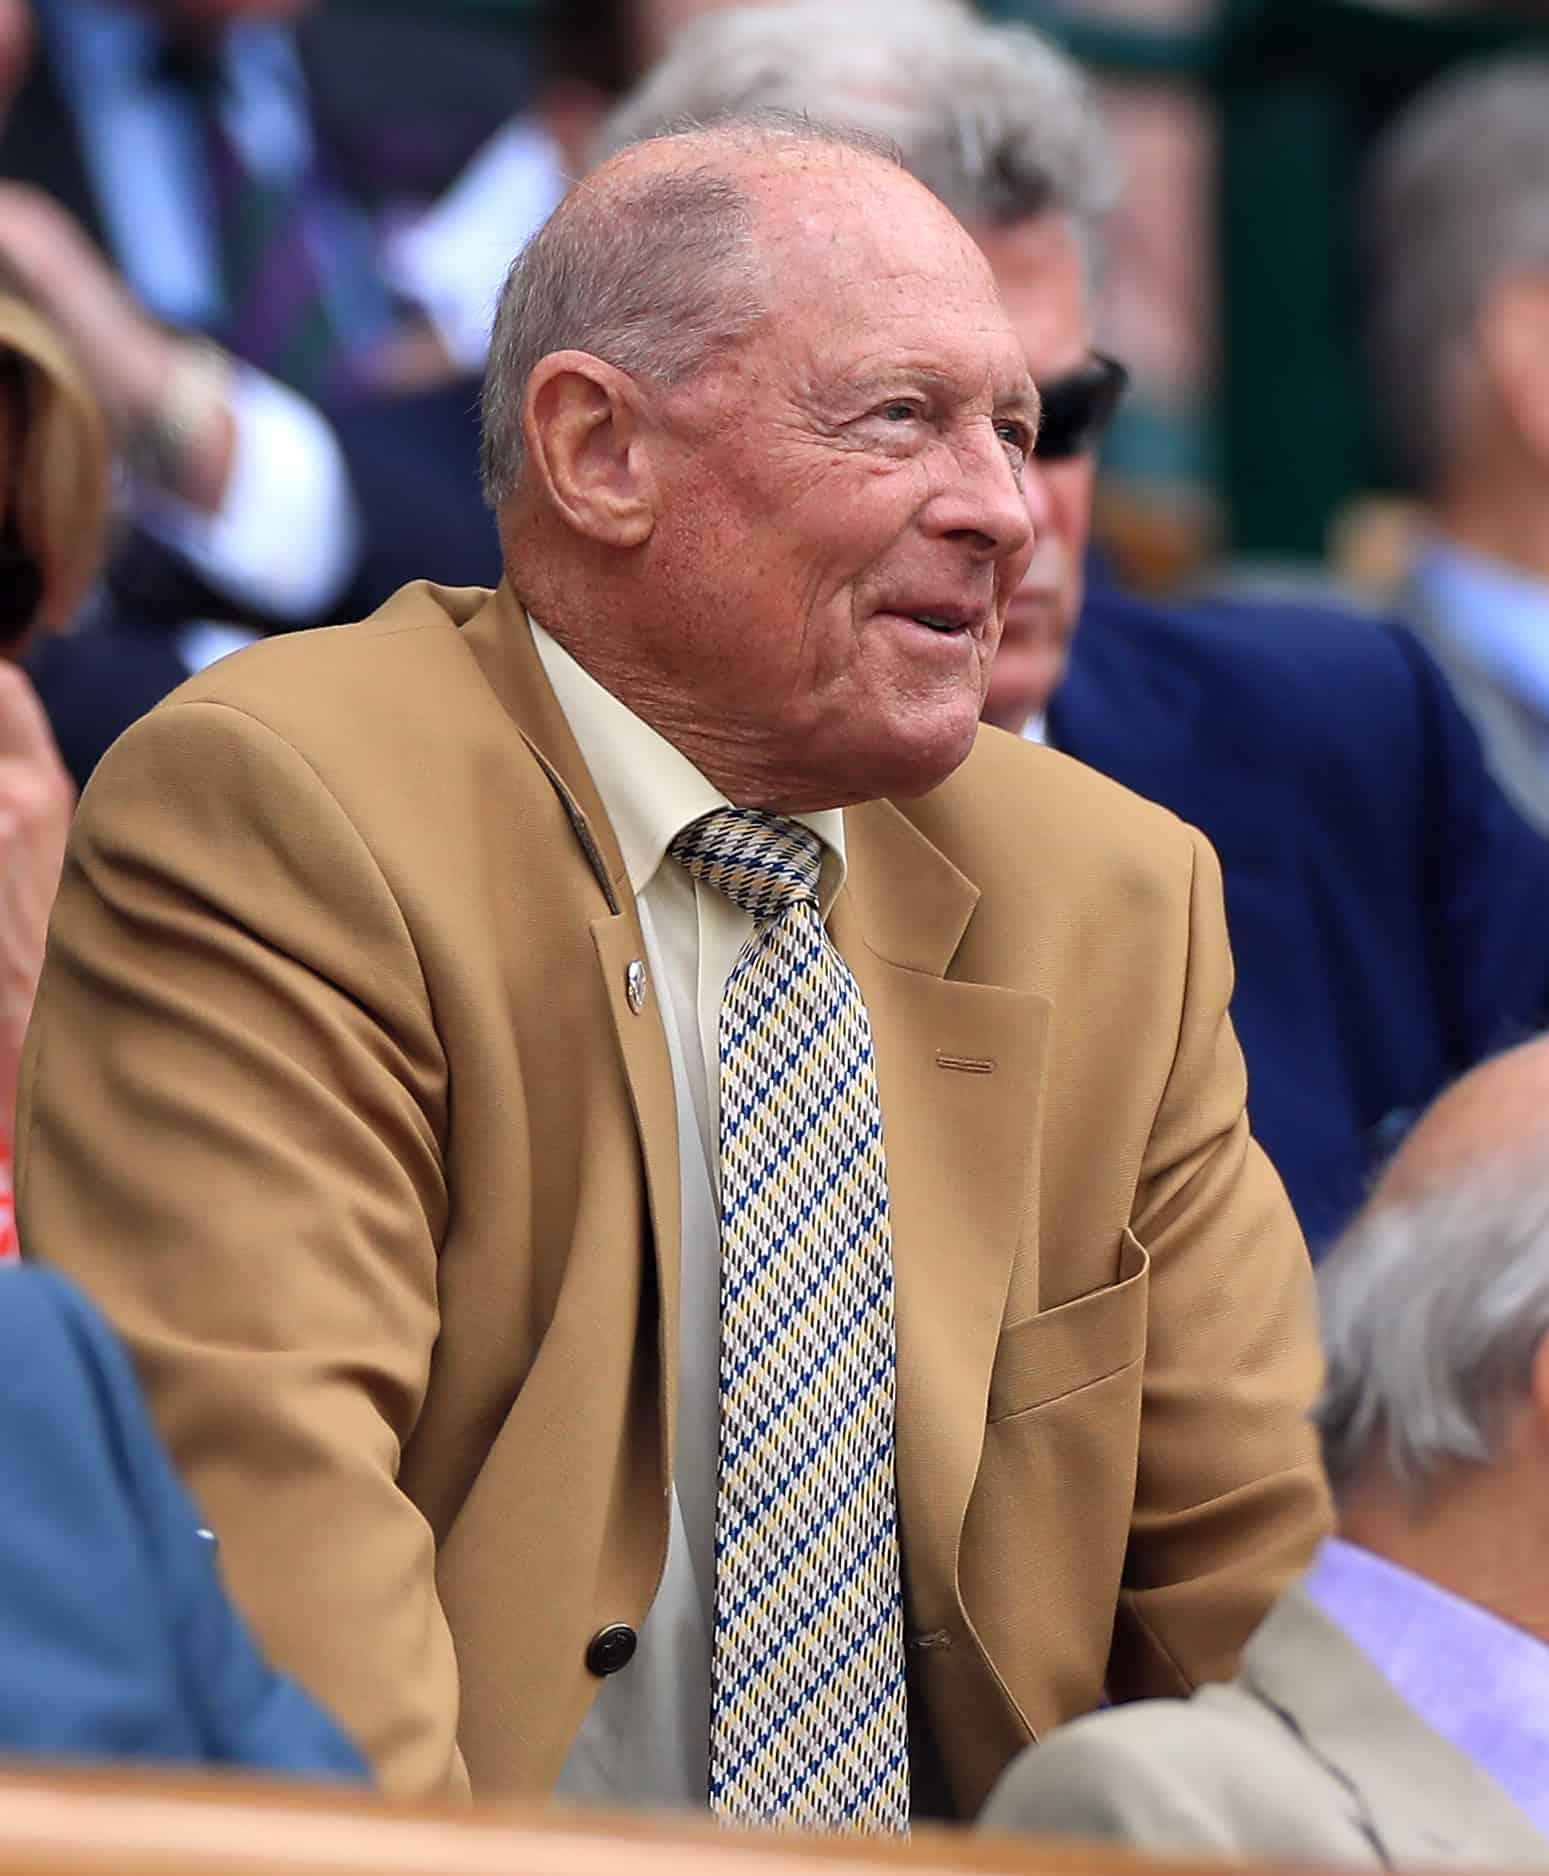 Geoffrey Boycott in the royal box of centre court on day two of the Wimbledon Championships at the All England Lawn Tennis and Croquet Club, Wimbledon.